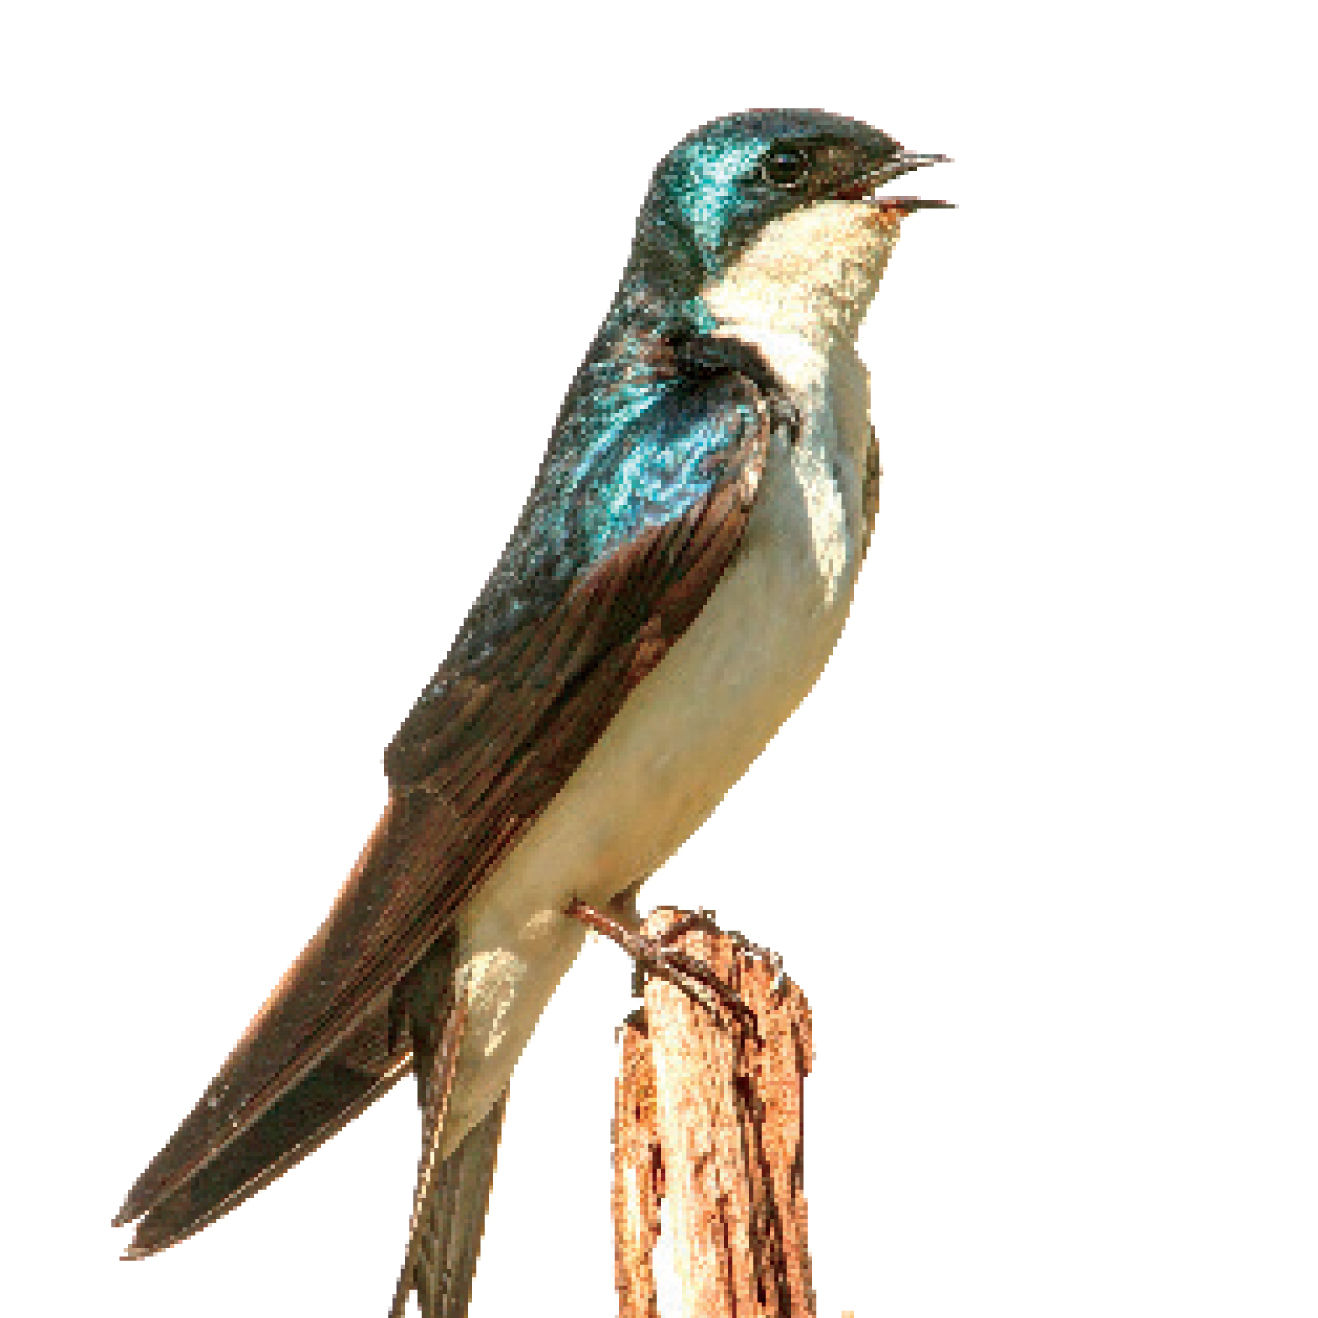 Pcsu 16 tree swallow mbksly